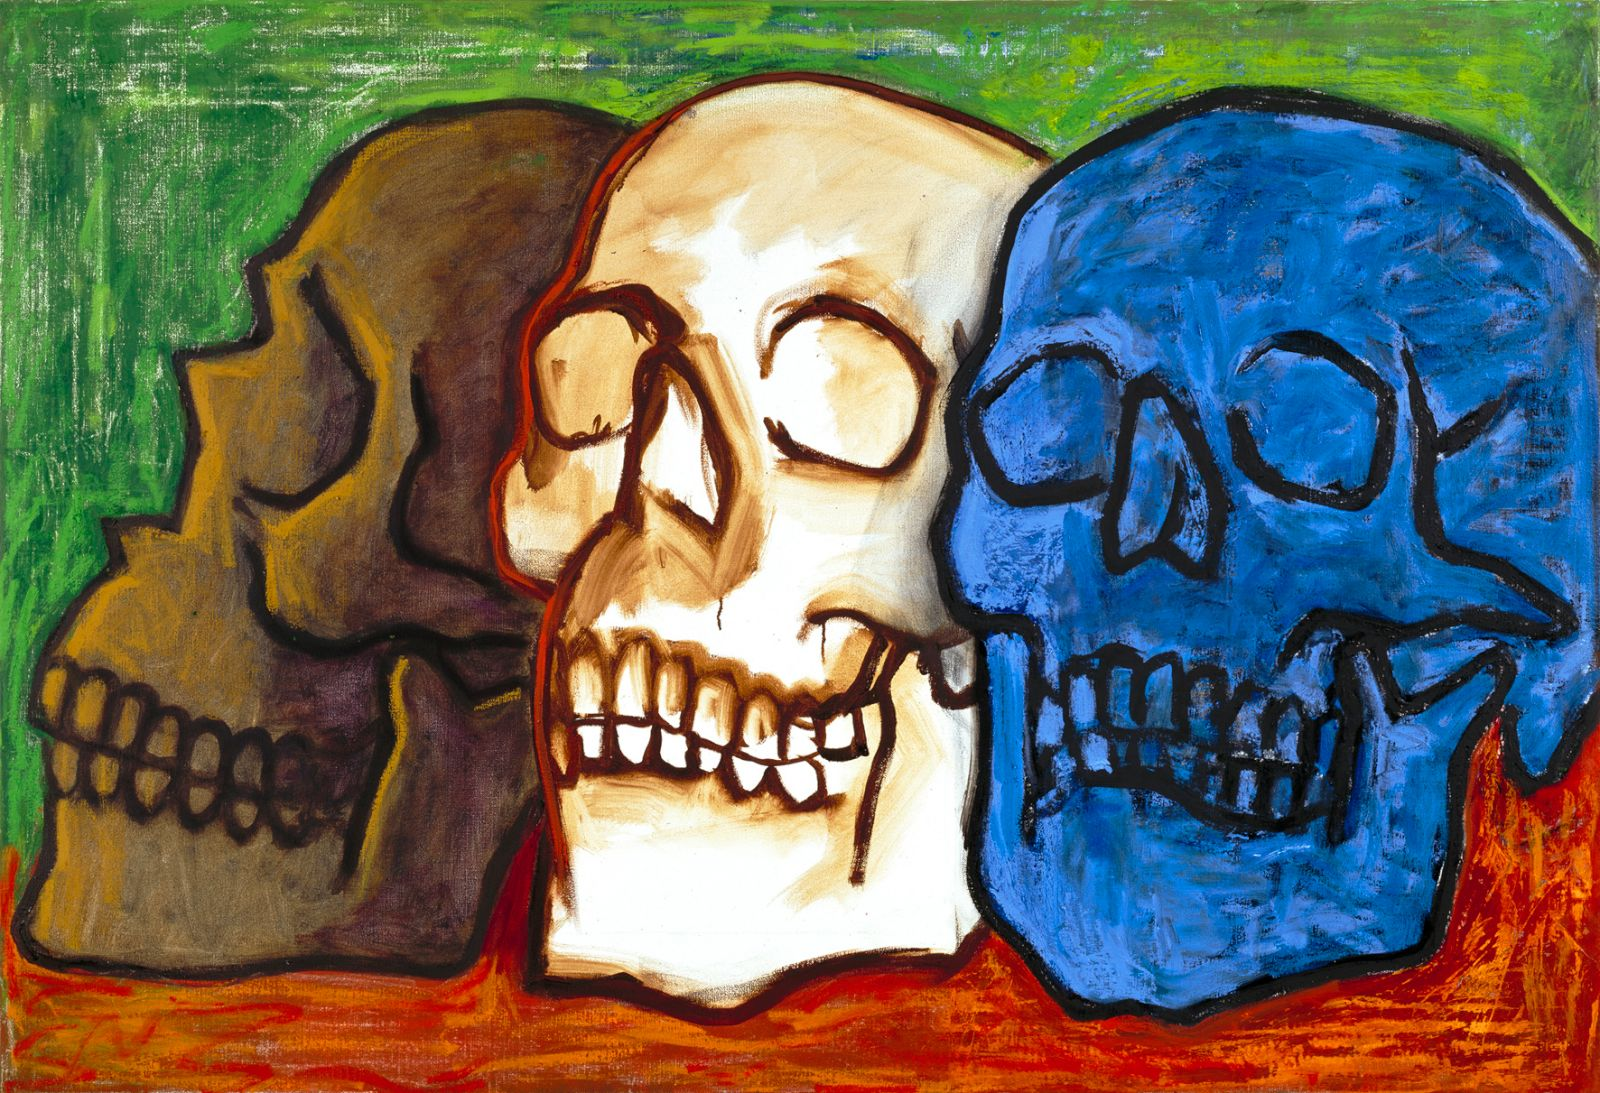 Untitled, 2006, oil on canvas, 89 x 130 cm